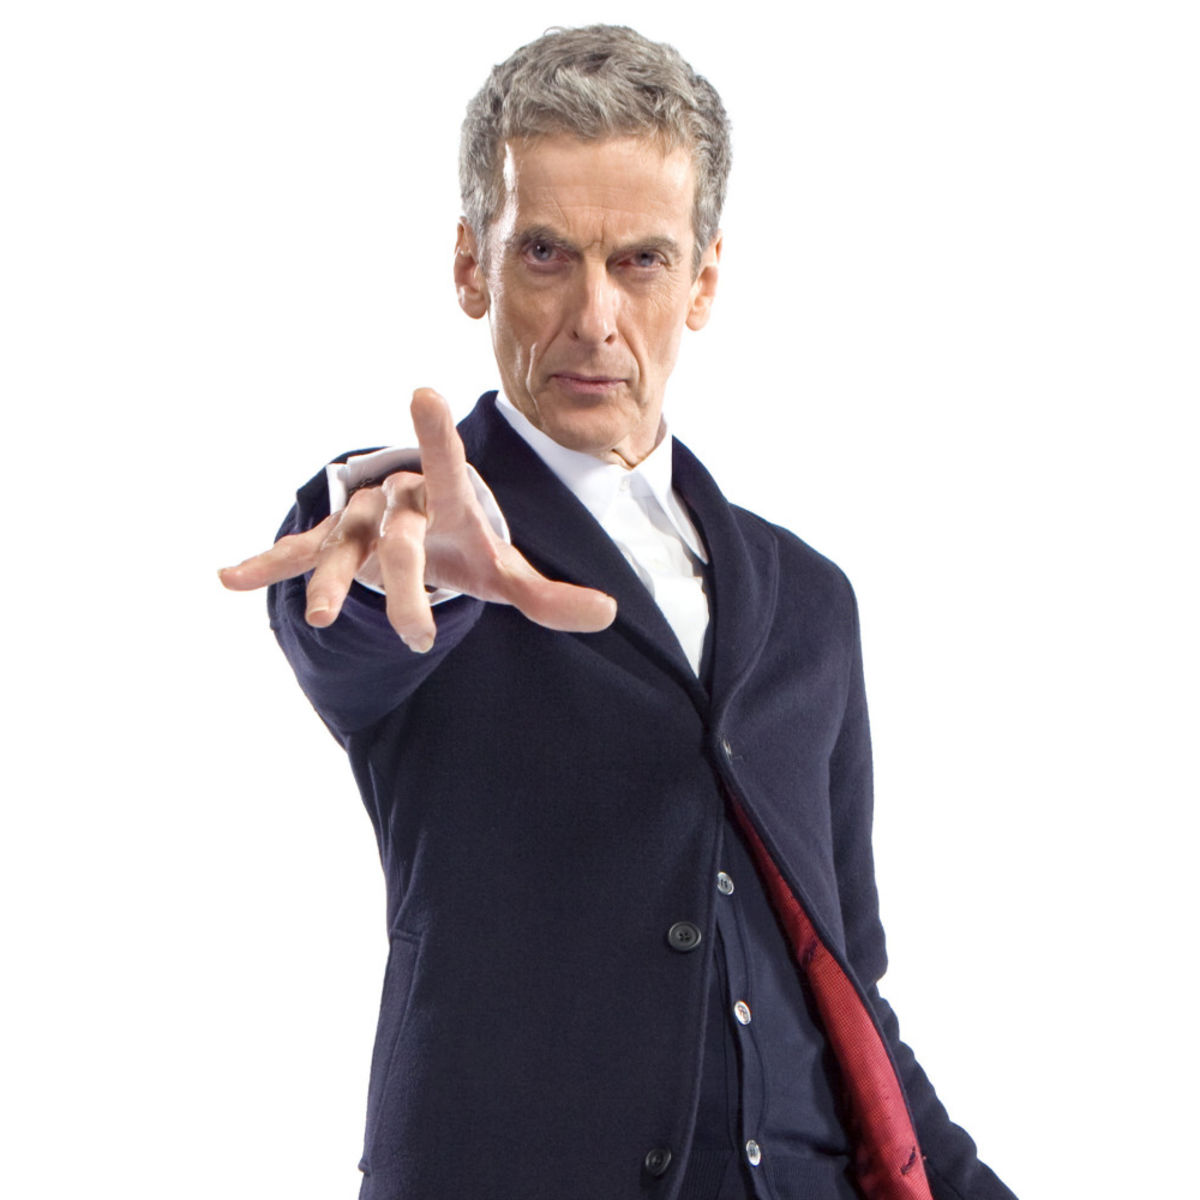 o-PETER-CAPALDI-DOCTOR-WHO-facebook.jpg